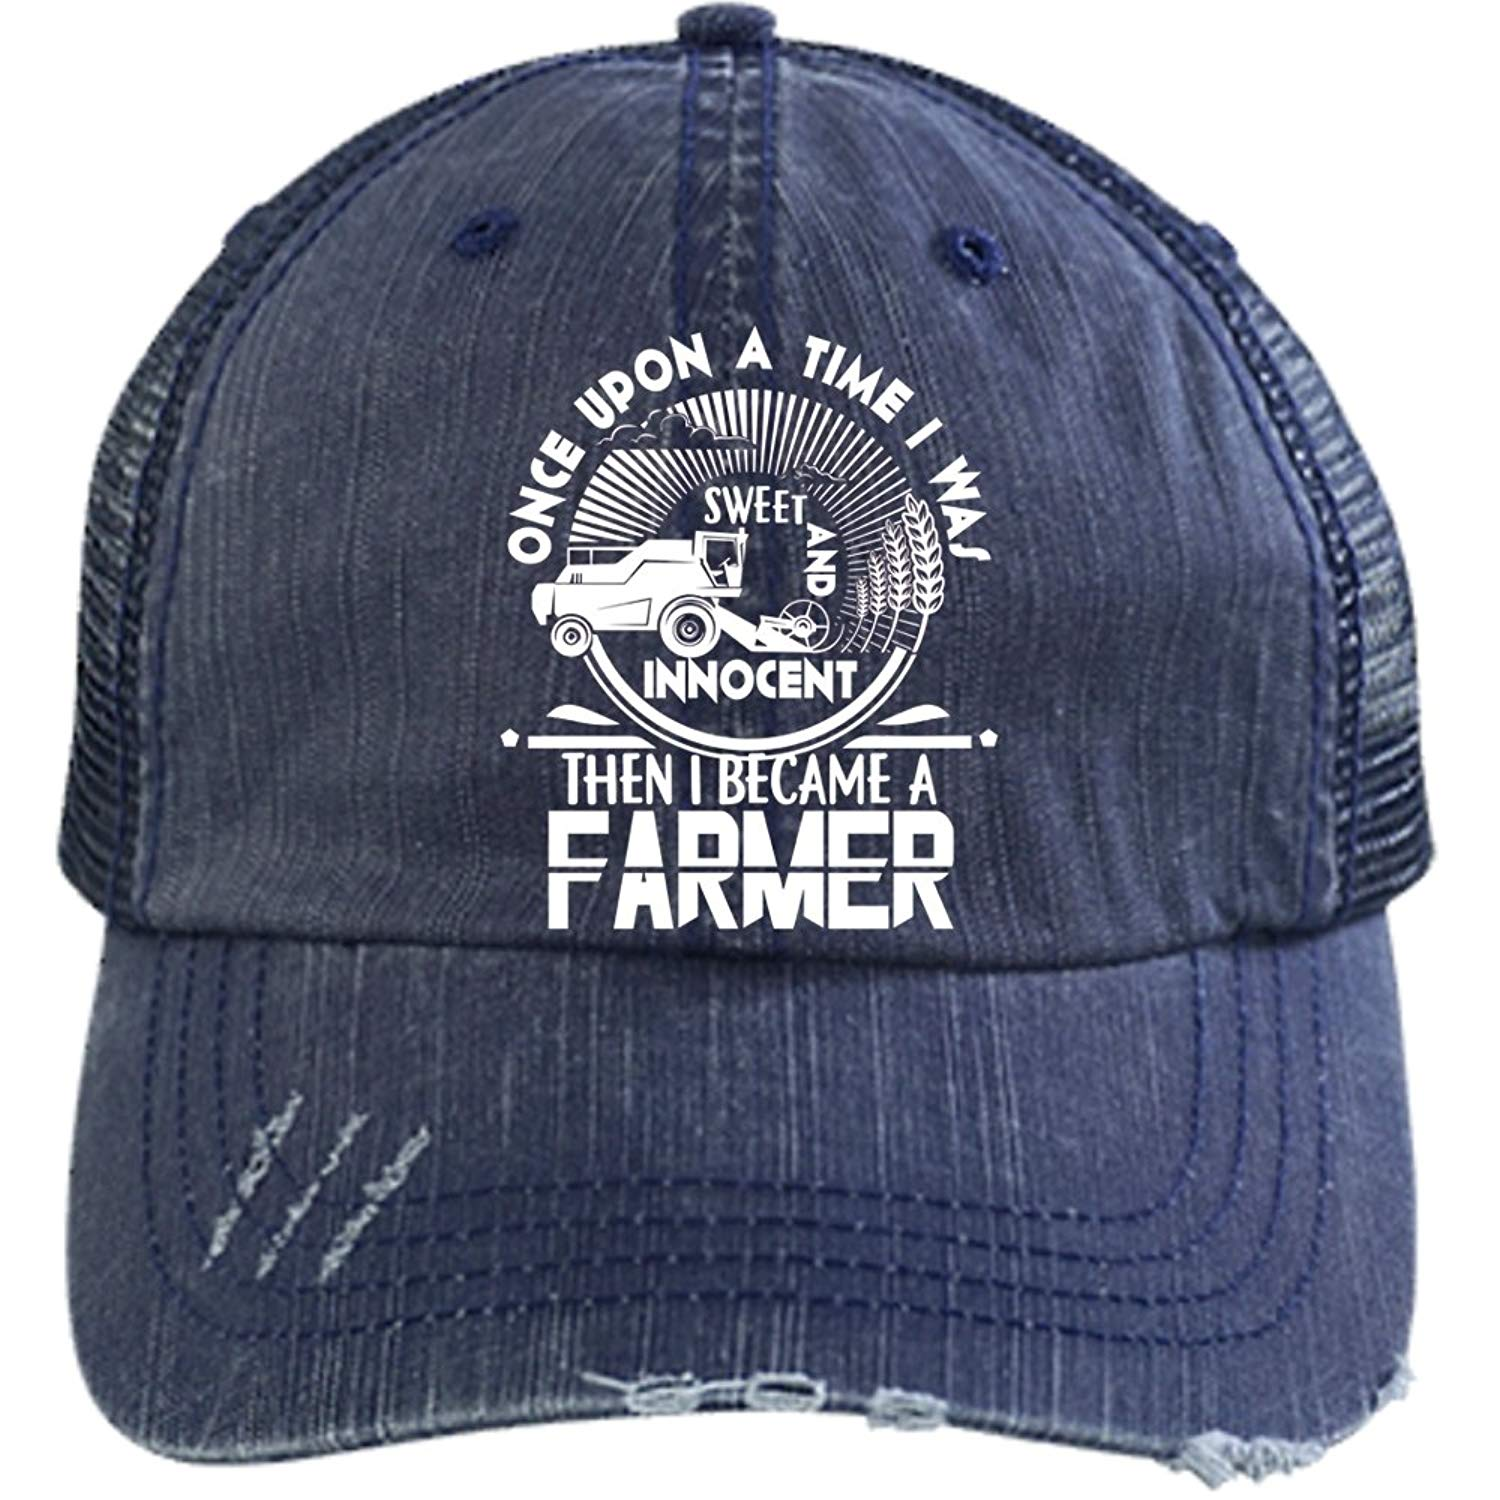 9c2e37a8983 Get Quotations · Then I Became A Farmer Hat